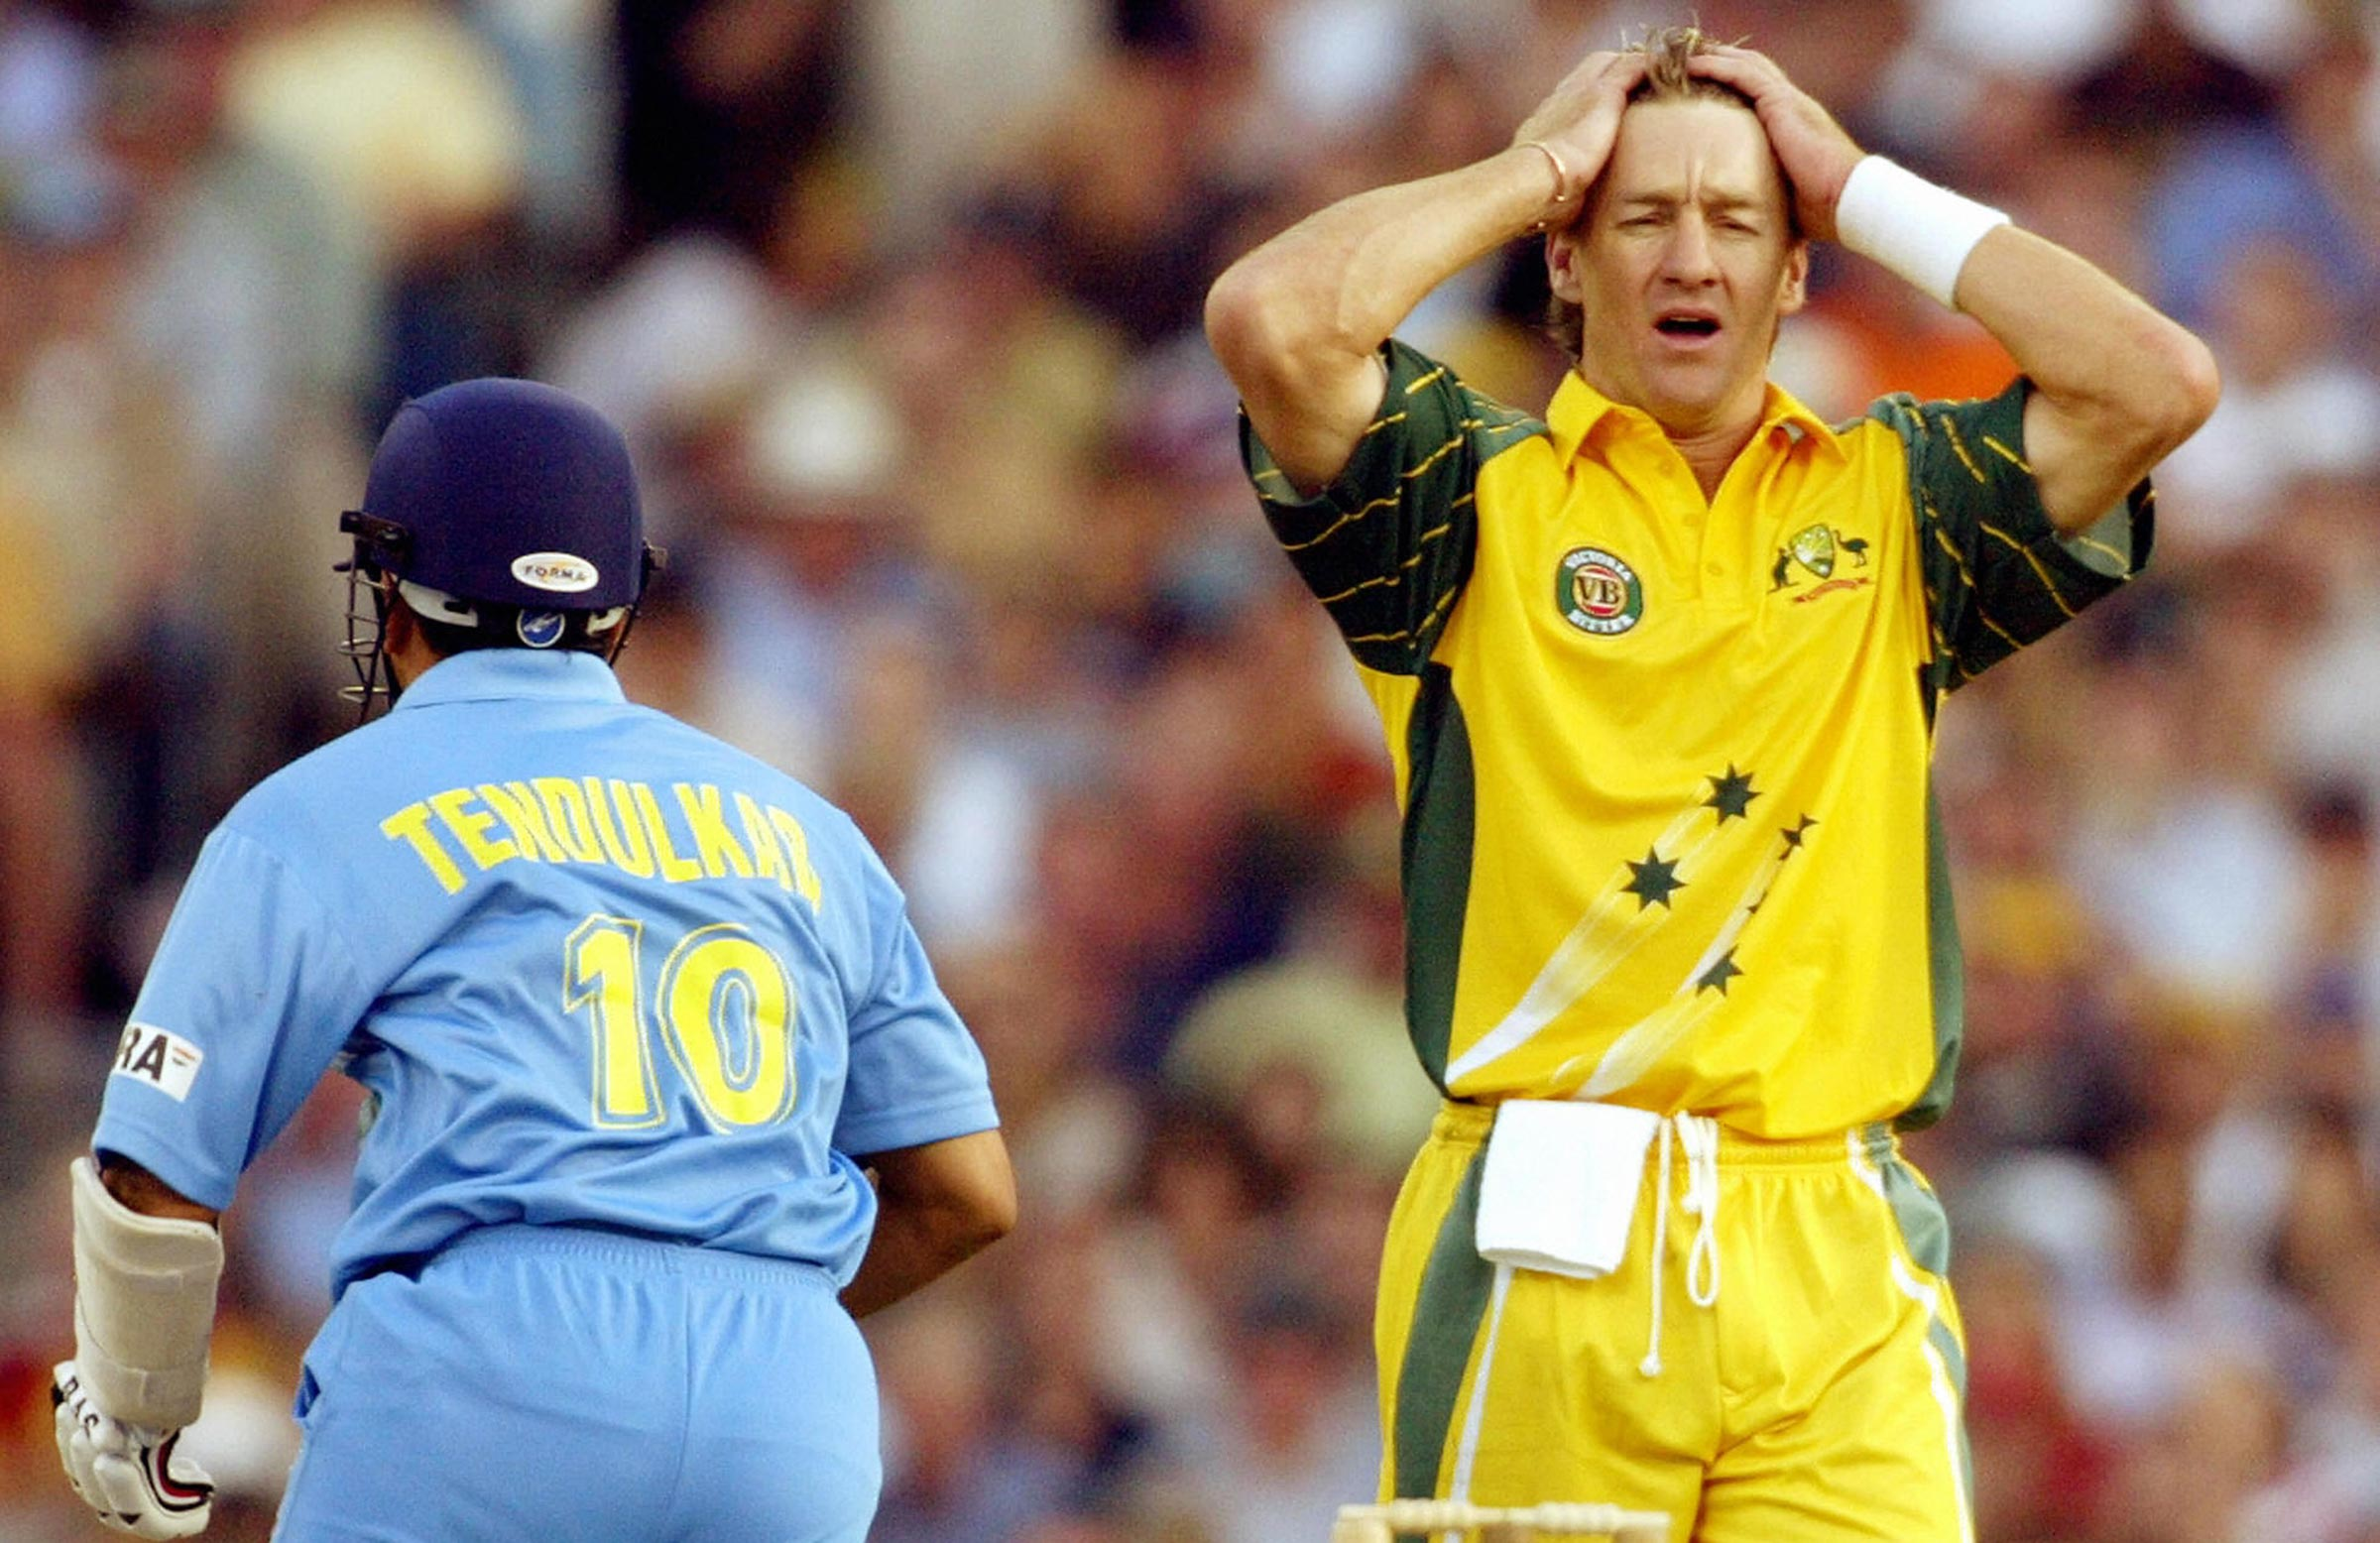 The early games in the 2003-04 ODI tri-series were tightly fought // Getty